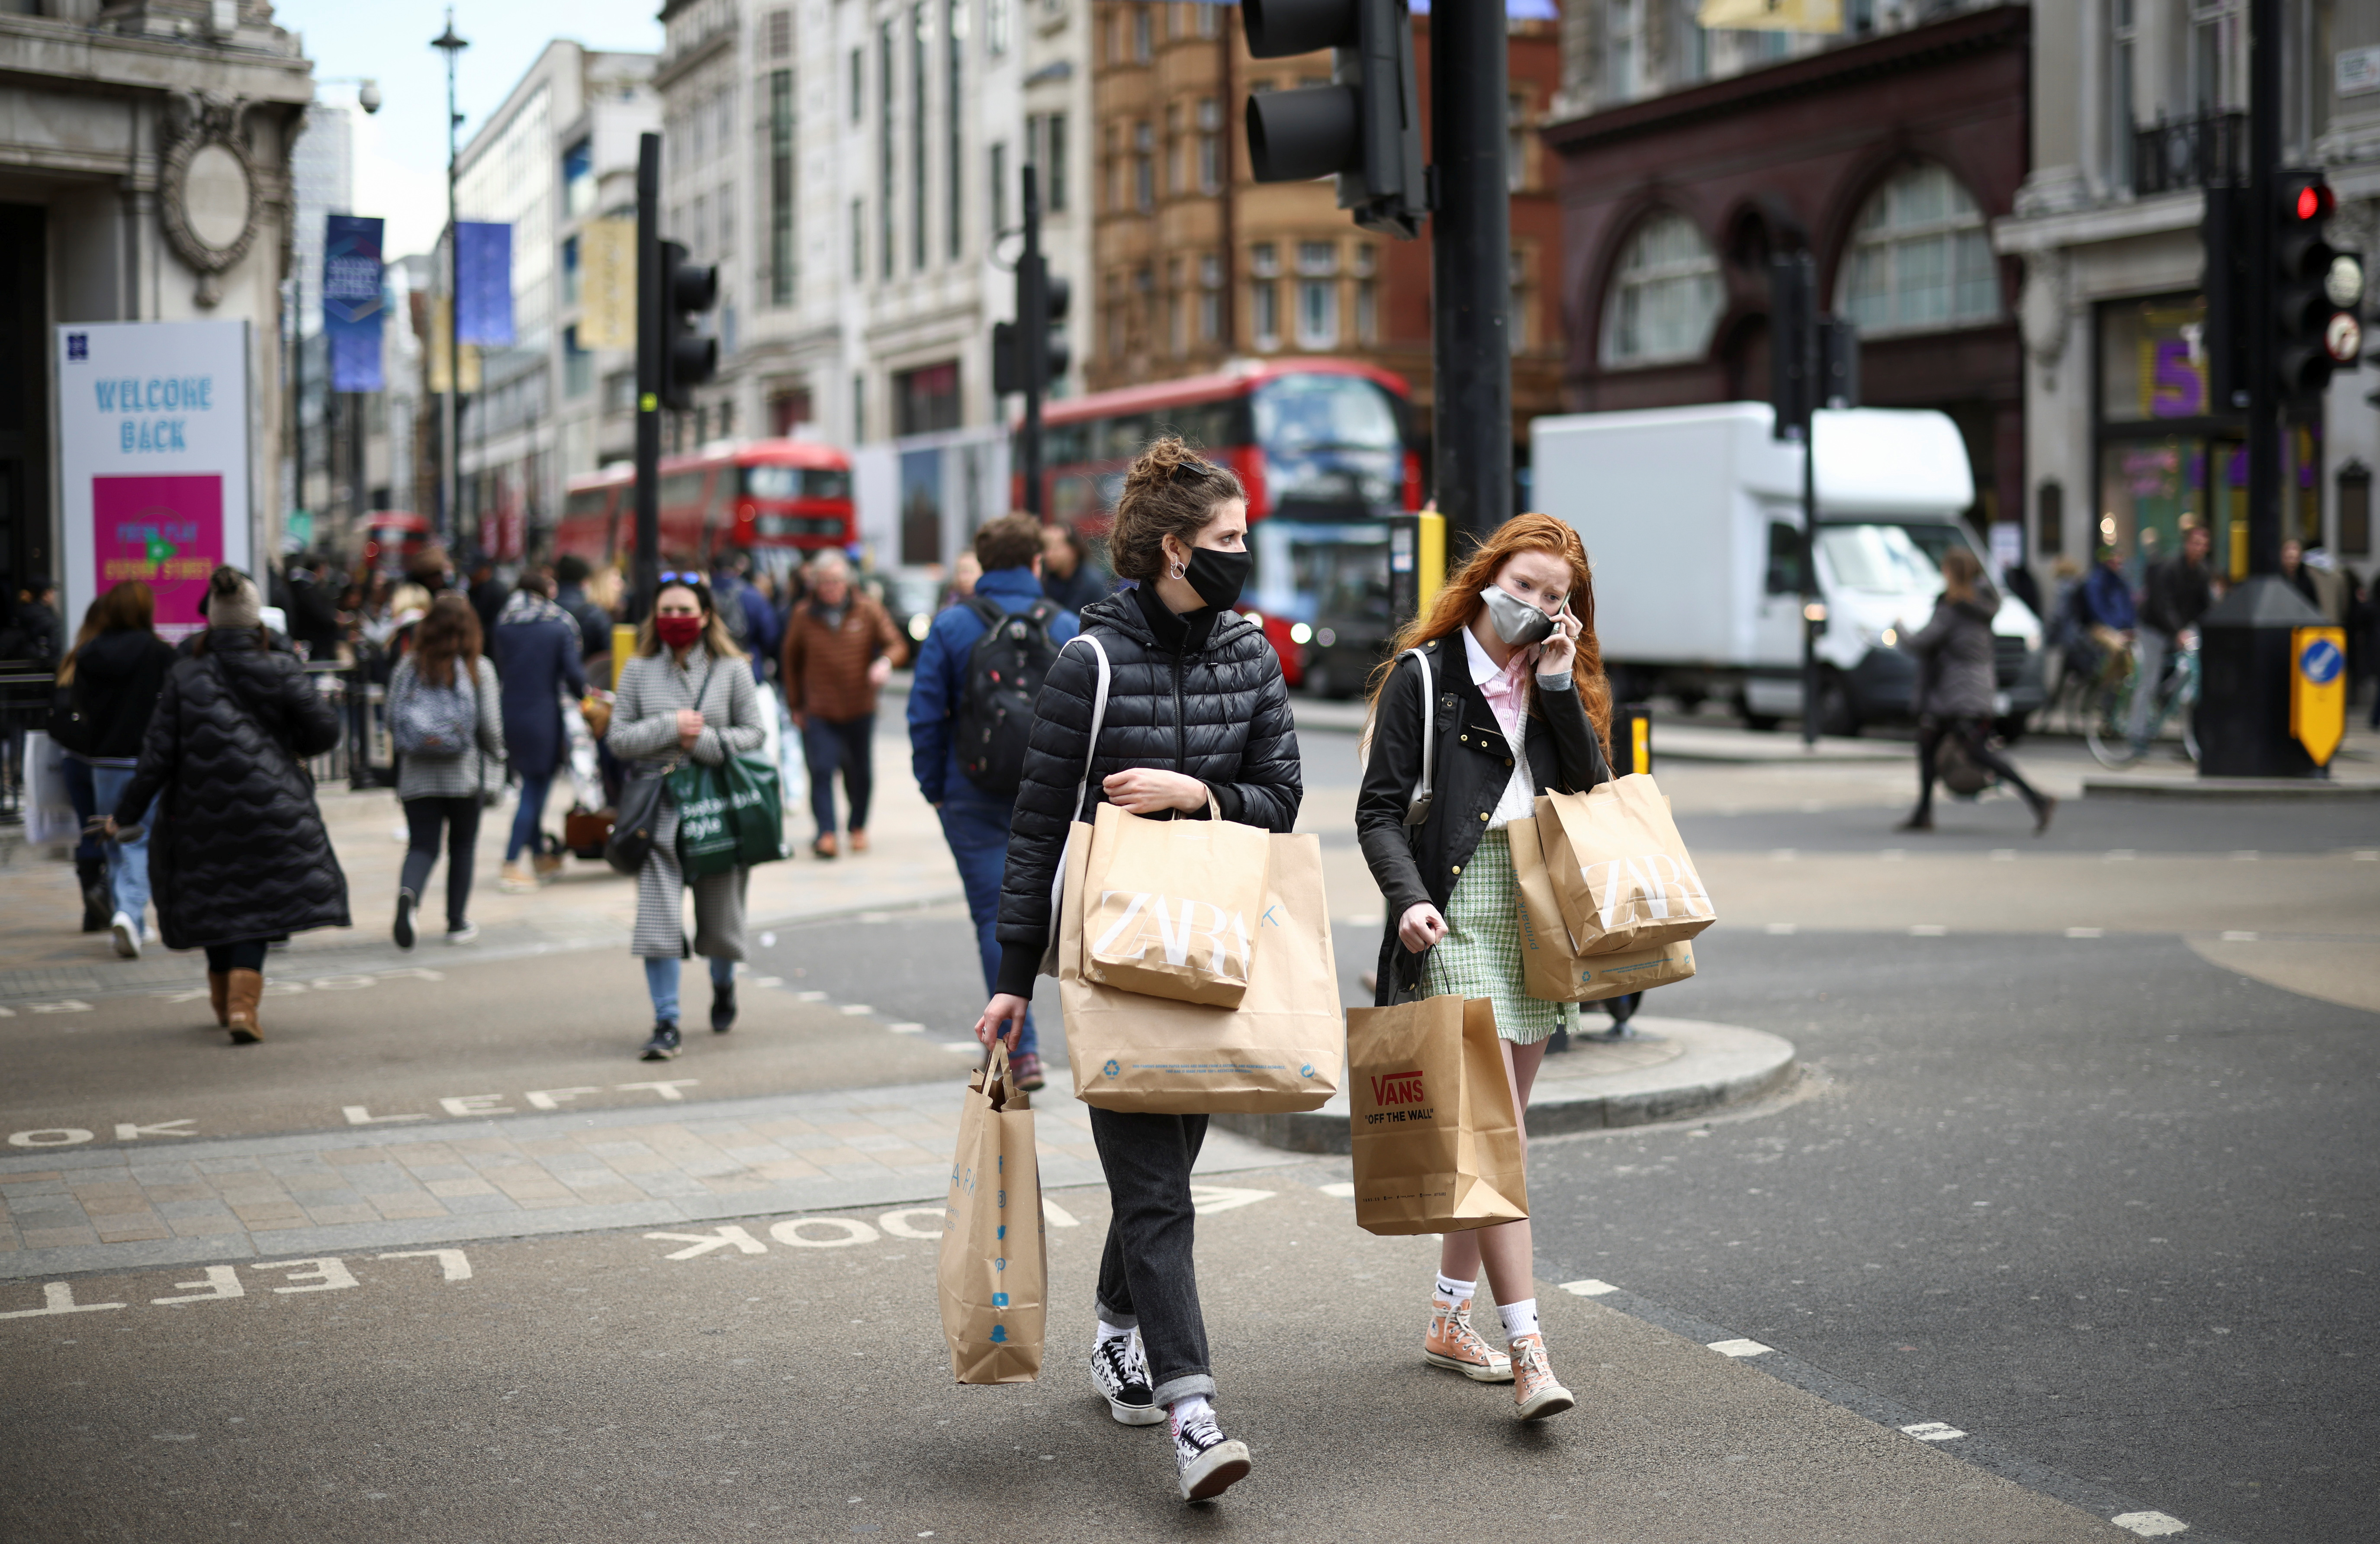 People walk at Oxford Street, as the coronavirus disease (COVID-19) restrictions ease, in London, Britain April 12, 2021. REUTERS/Henry Nicholls/File photo